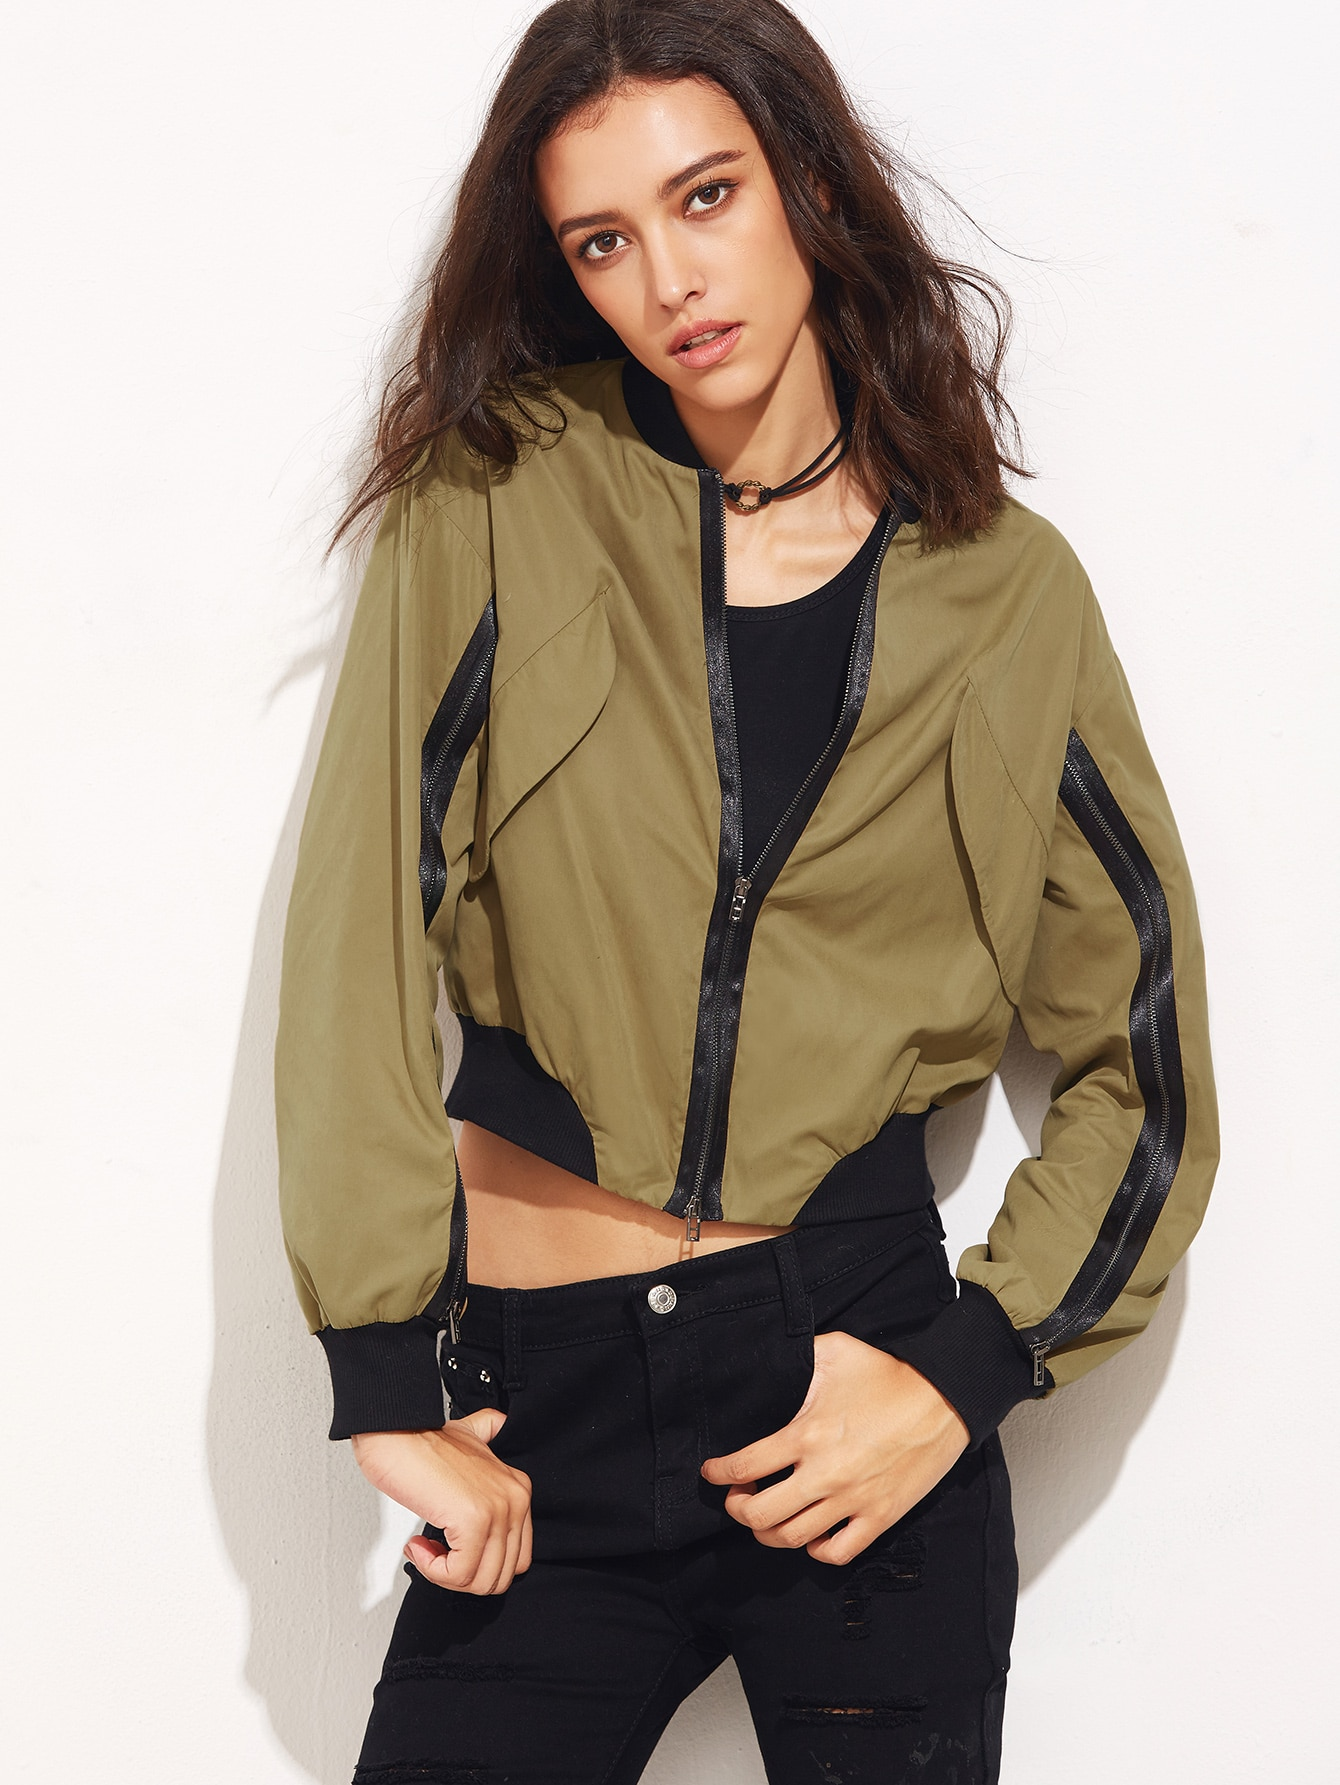 Khaki Contrast Ribbed Trim Bomber Jacket With Zip Detail jacket160913701